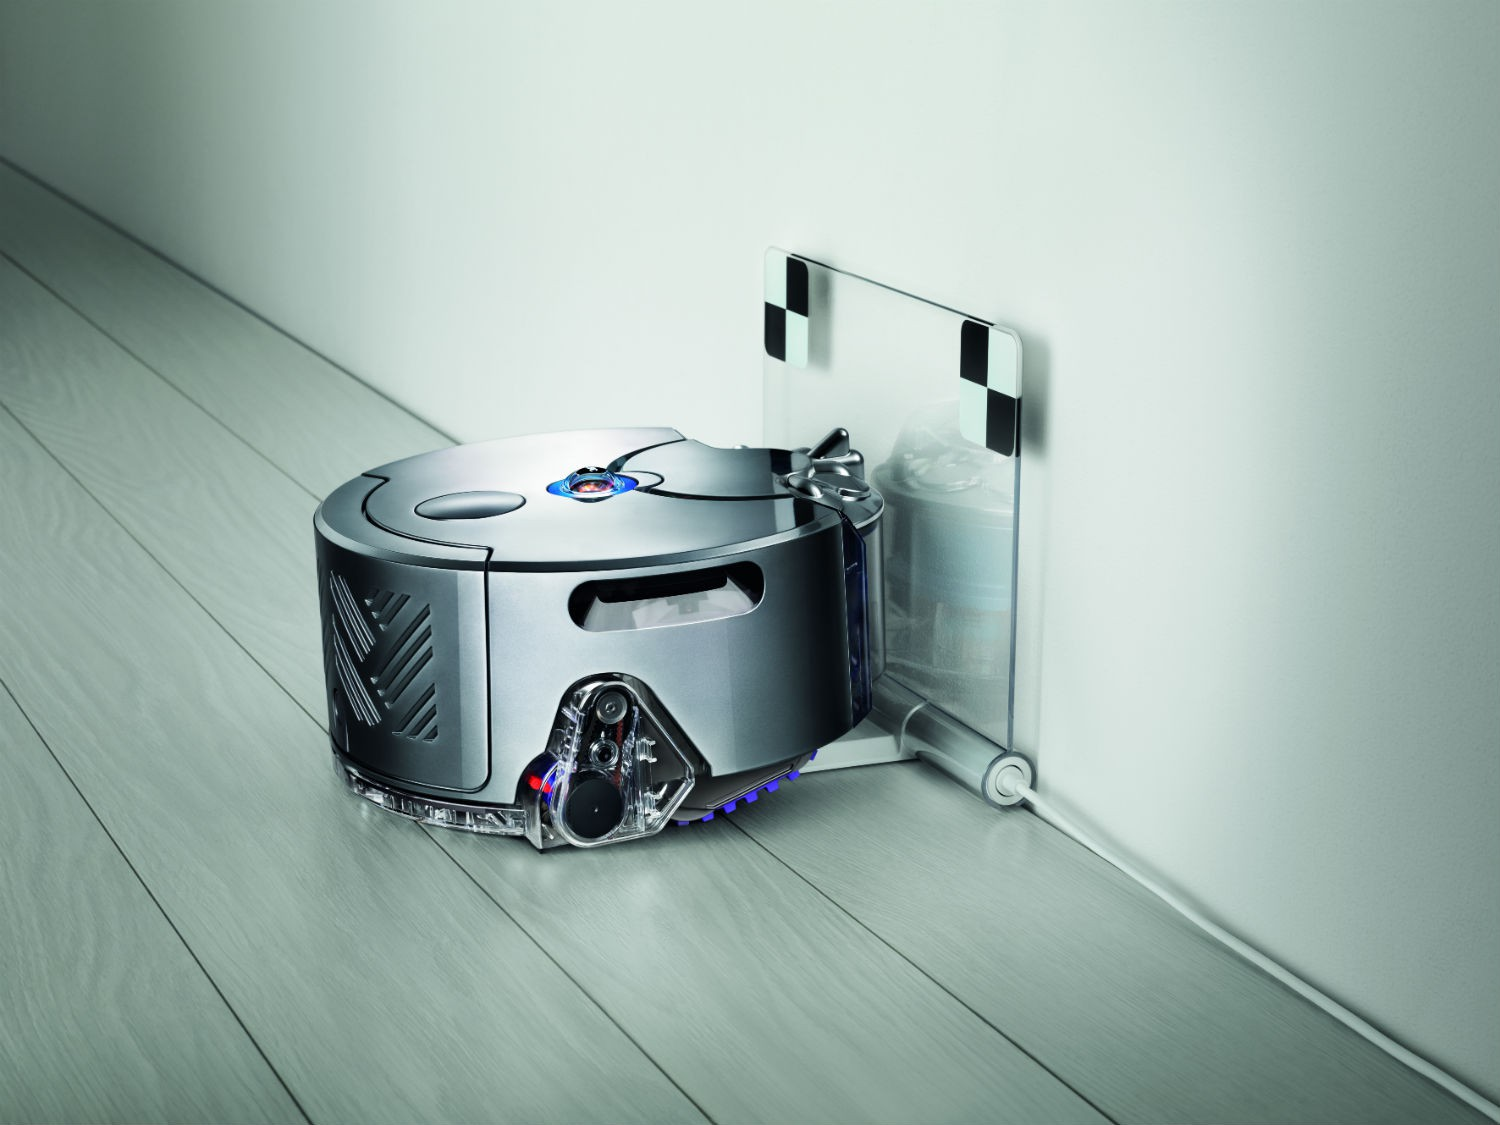 dyson 360 eye test complet aspirateur robot les. Black Bedroom Furniture Sets. Home Design Ideas